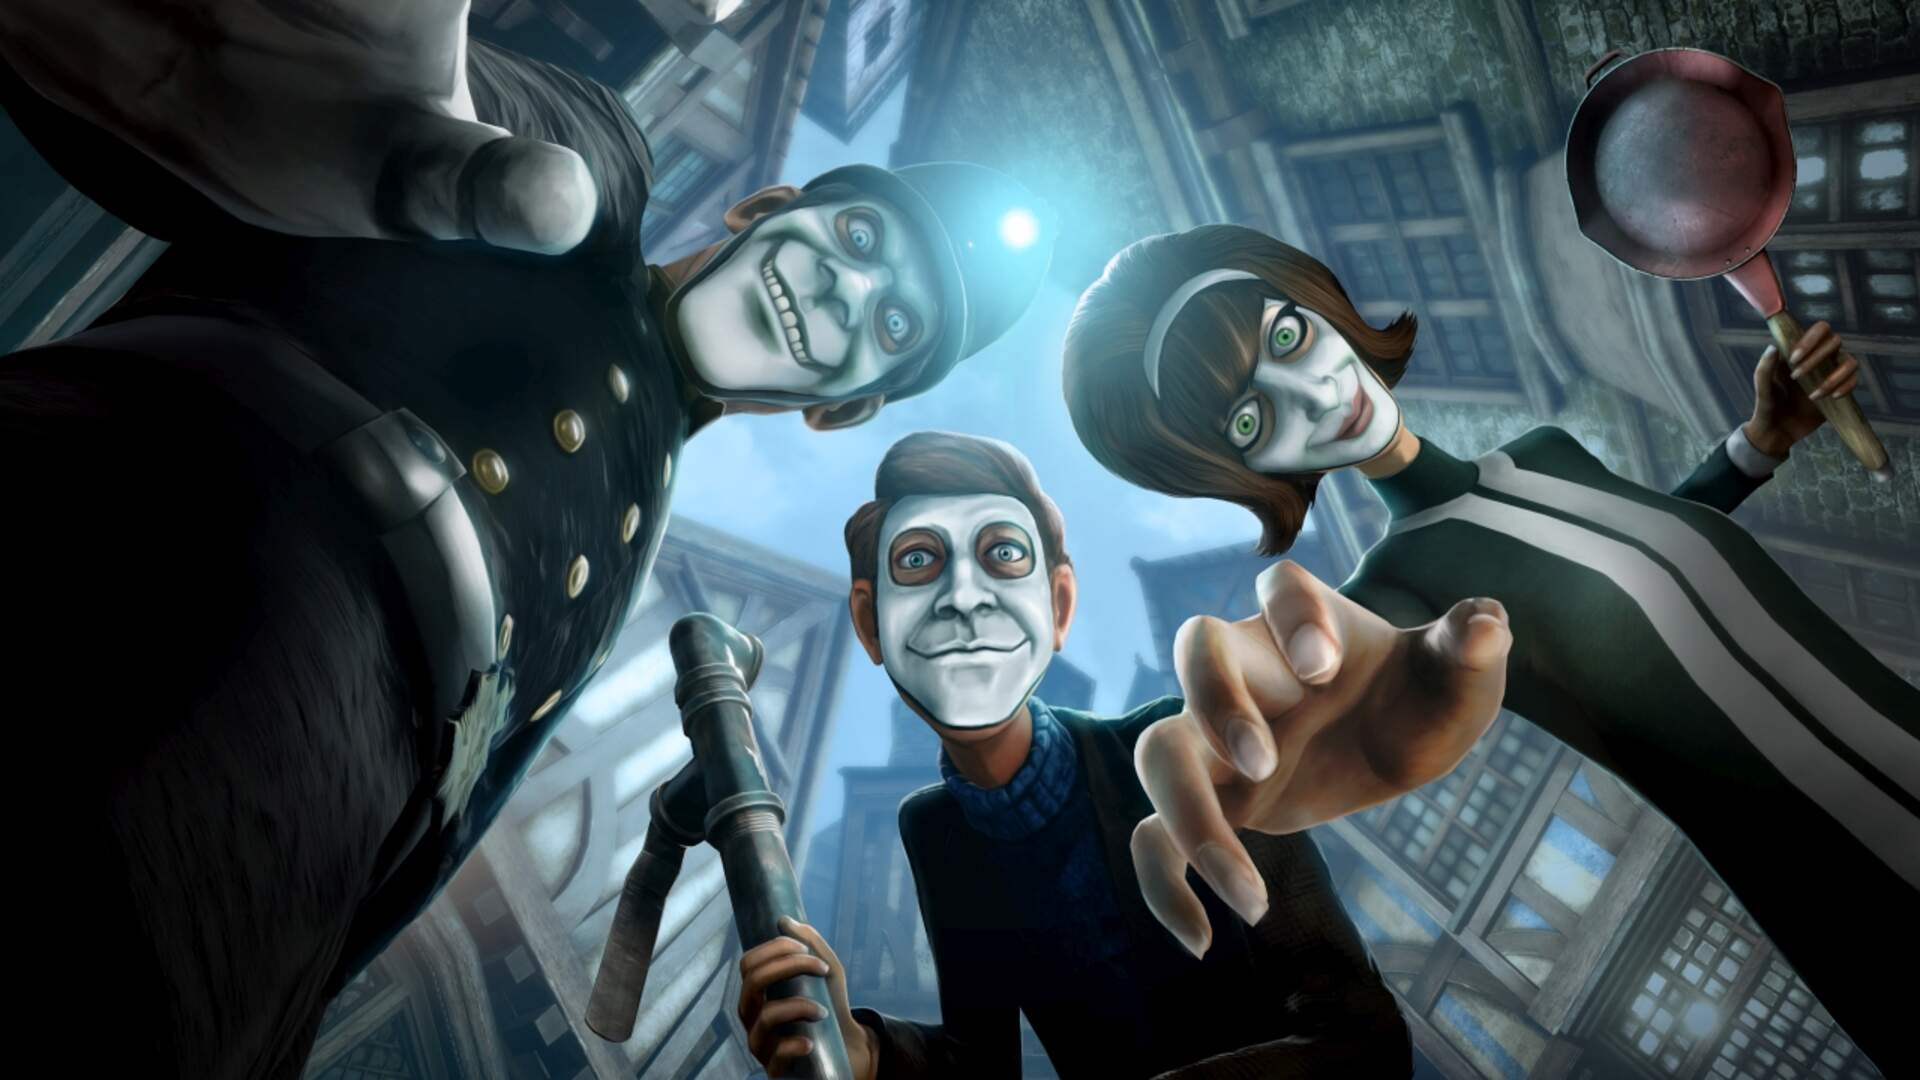 """We Had to Make the Chicken and the Egg at the Same Time:"" A We Happy Few Postmortem"